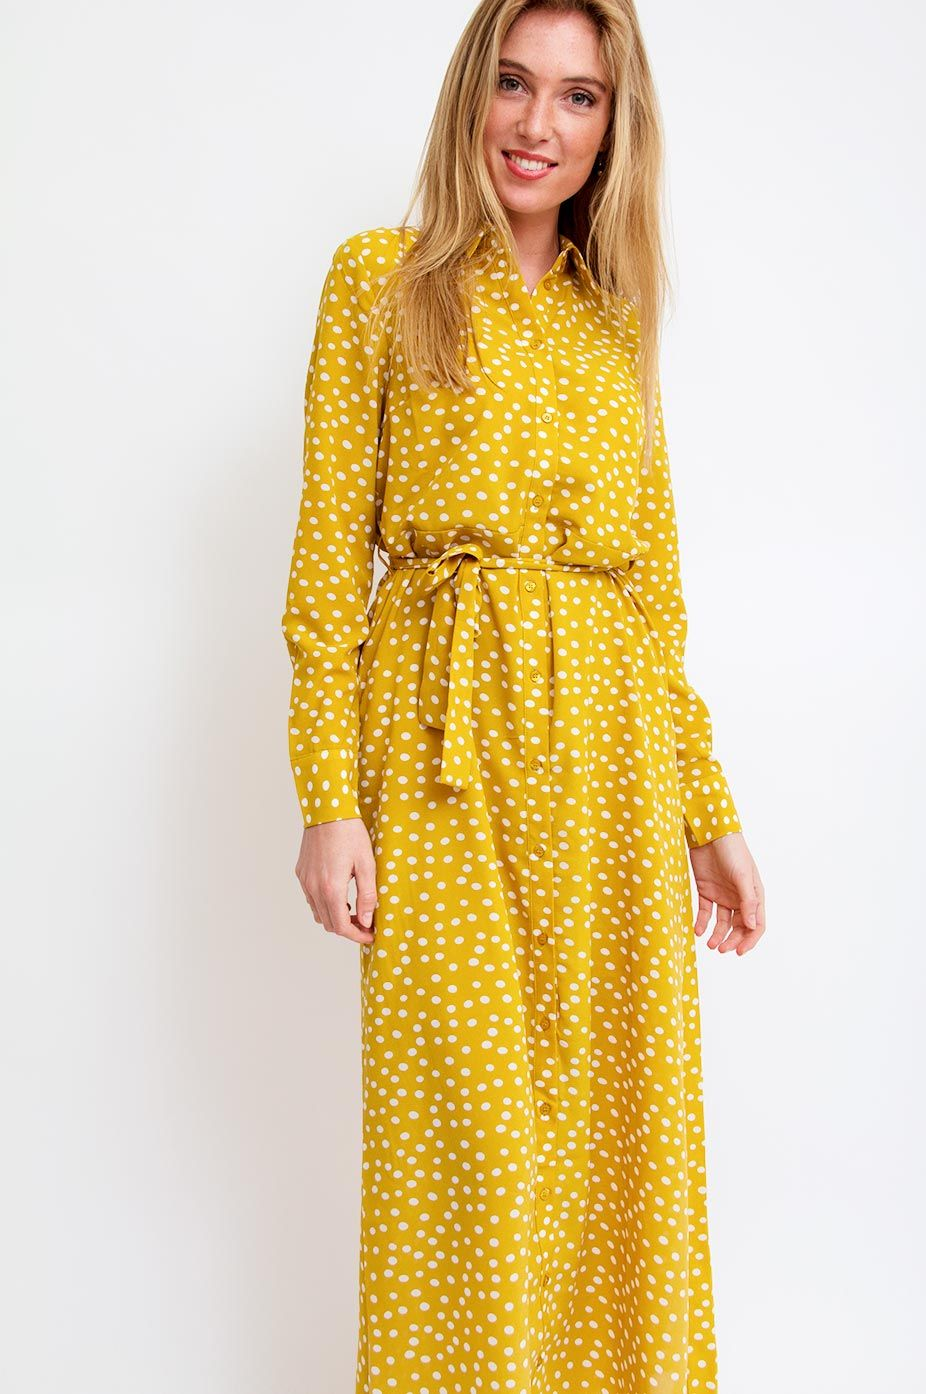 b5420b2c Selected Femme gives this maxi shirt dress a touch of playful character  with its polka dots